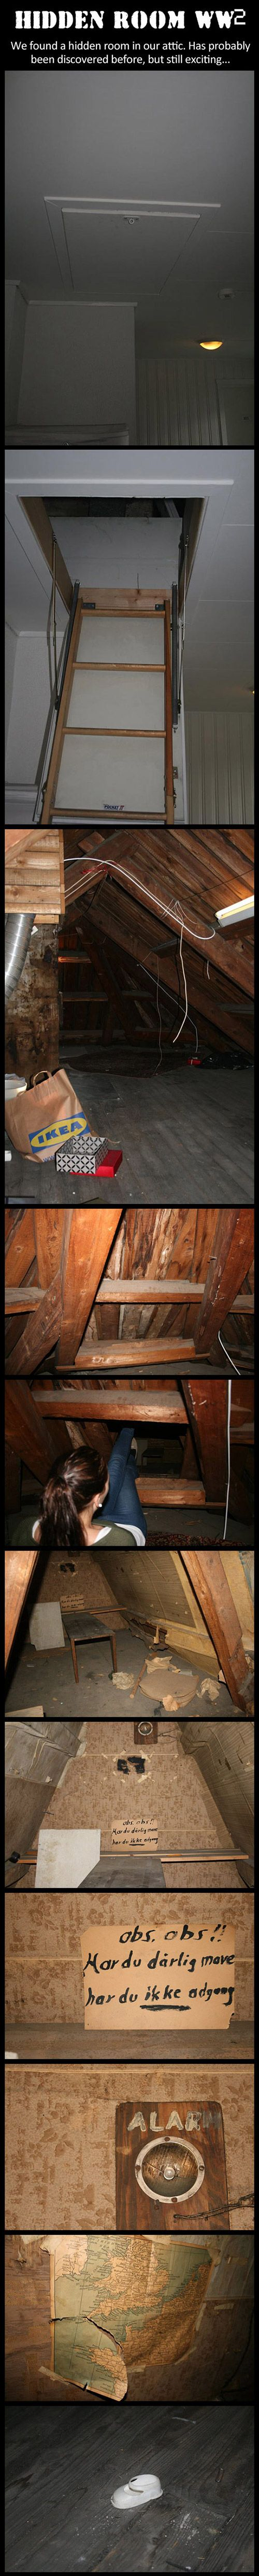 """A hidden room from WW2… """" if your stomach hurts, then your not allowed to be here"""""""